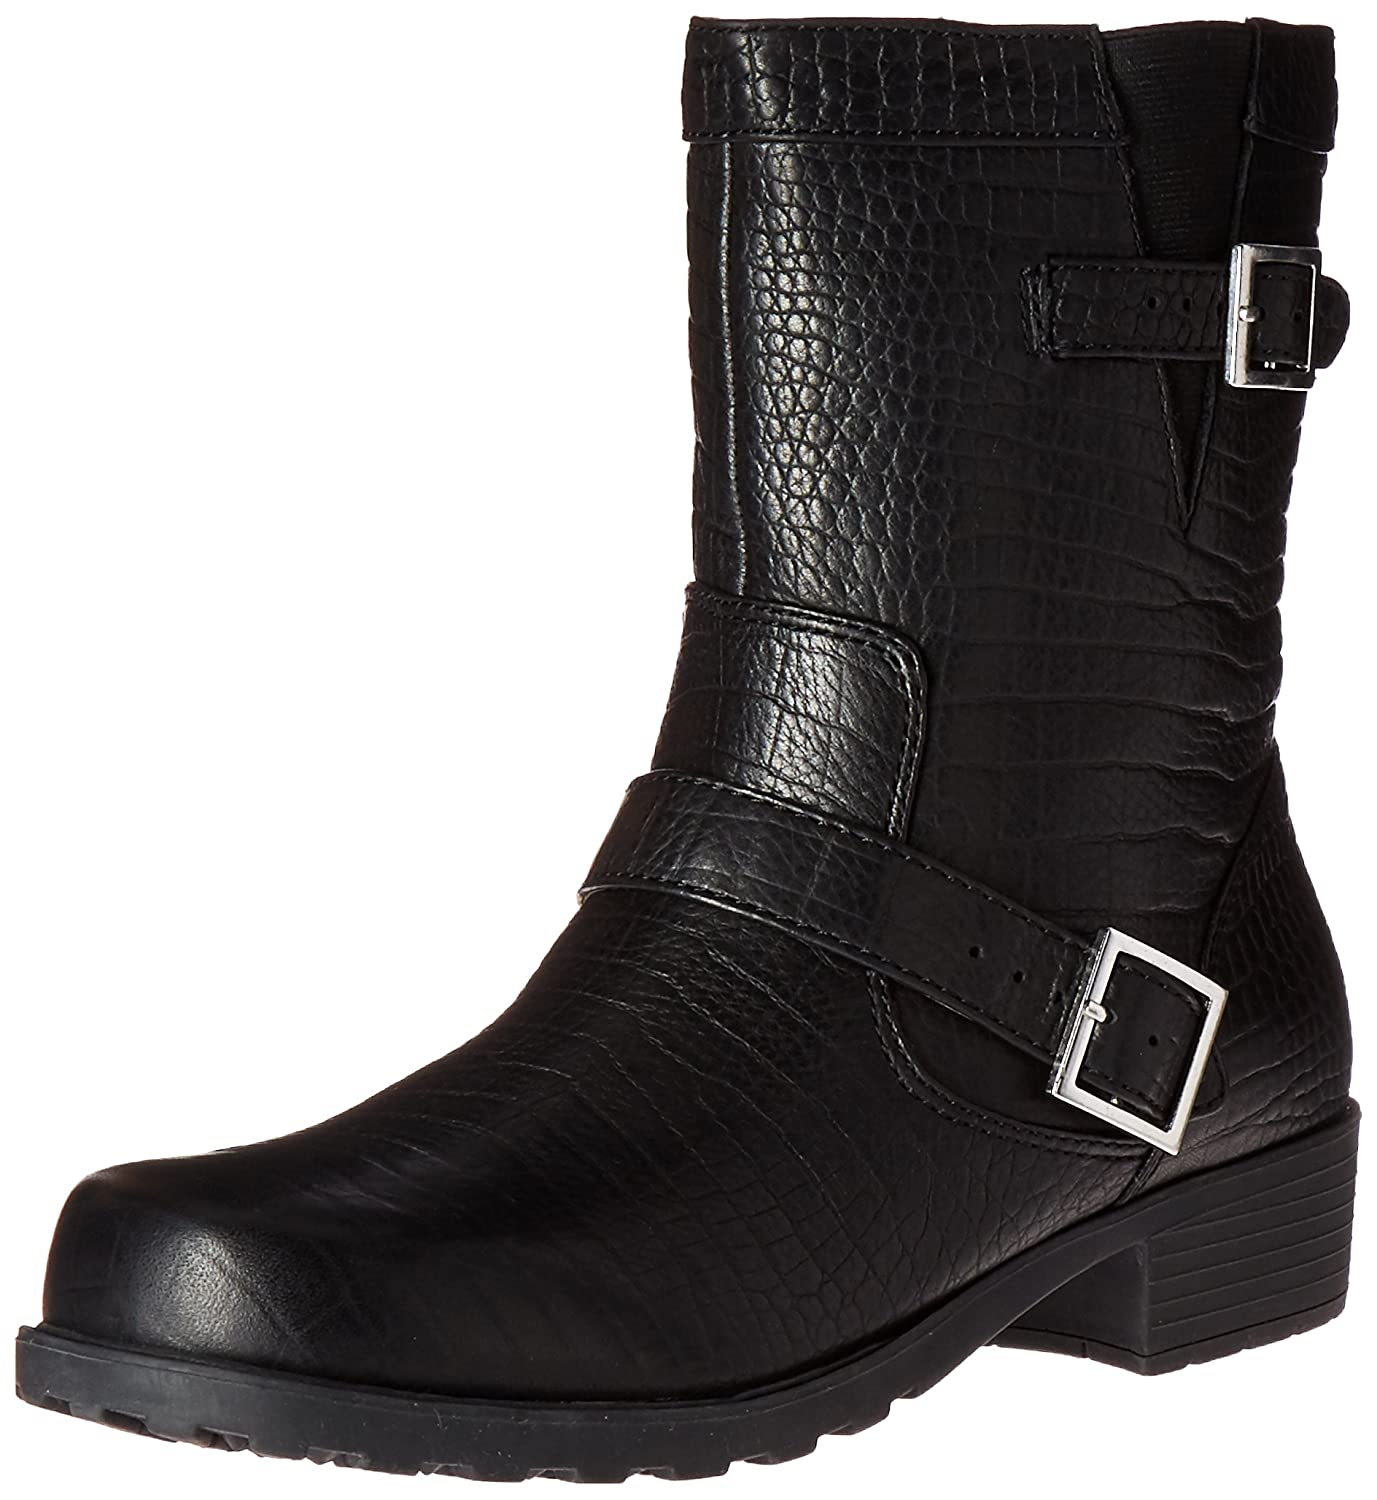 SoftWalk Women's Bellville Boot B00HQRFUG4 6 M US|Black Lizard